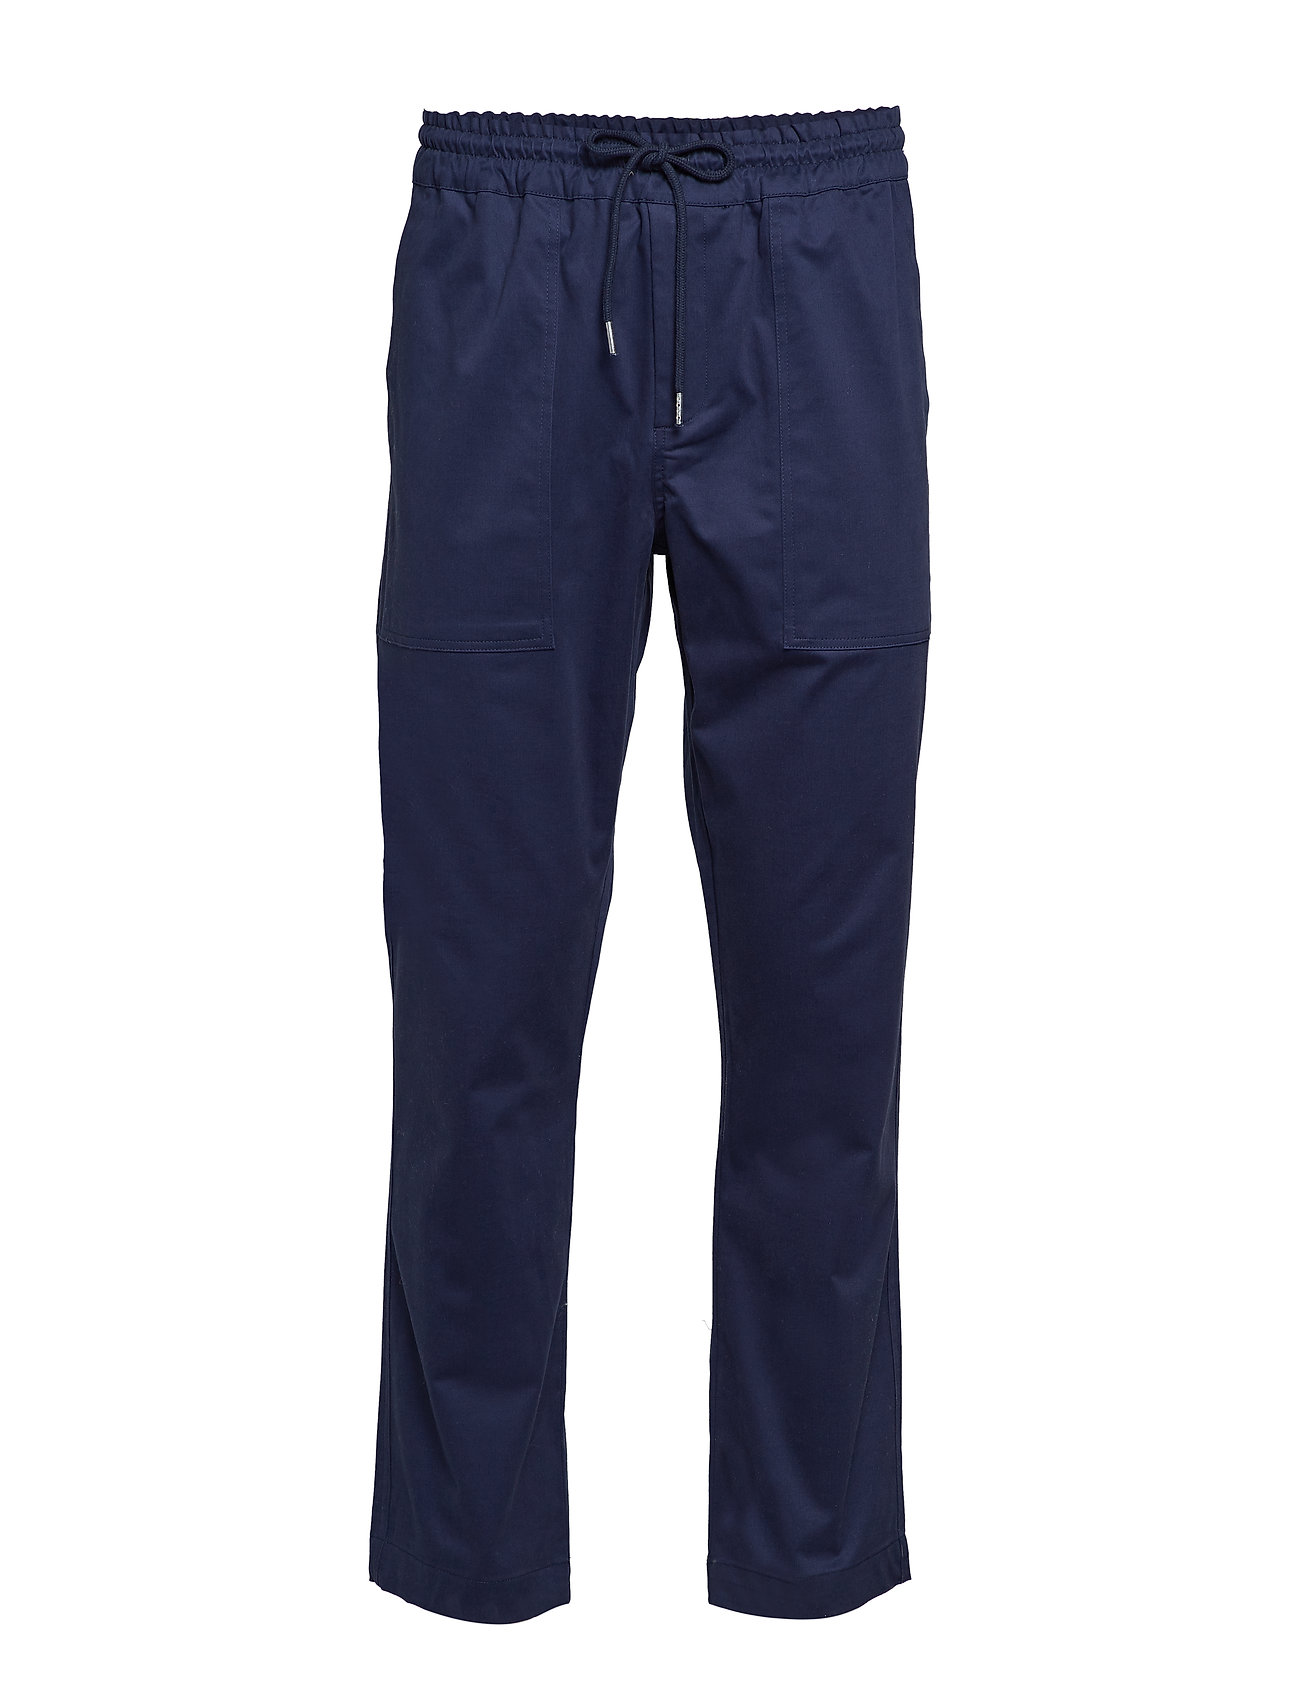 Soulland POPPE RELAXED PANT - NAVY